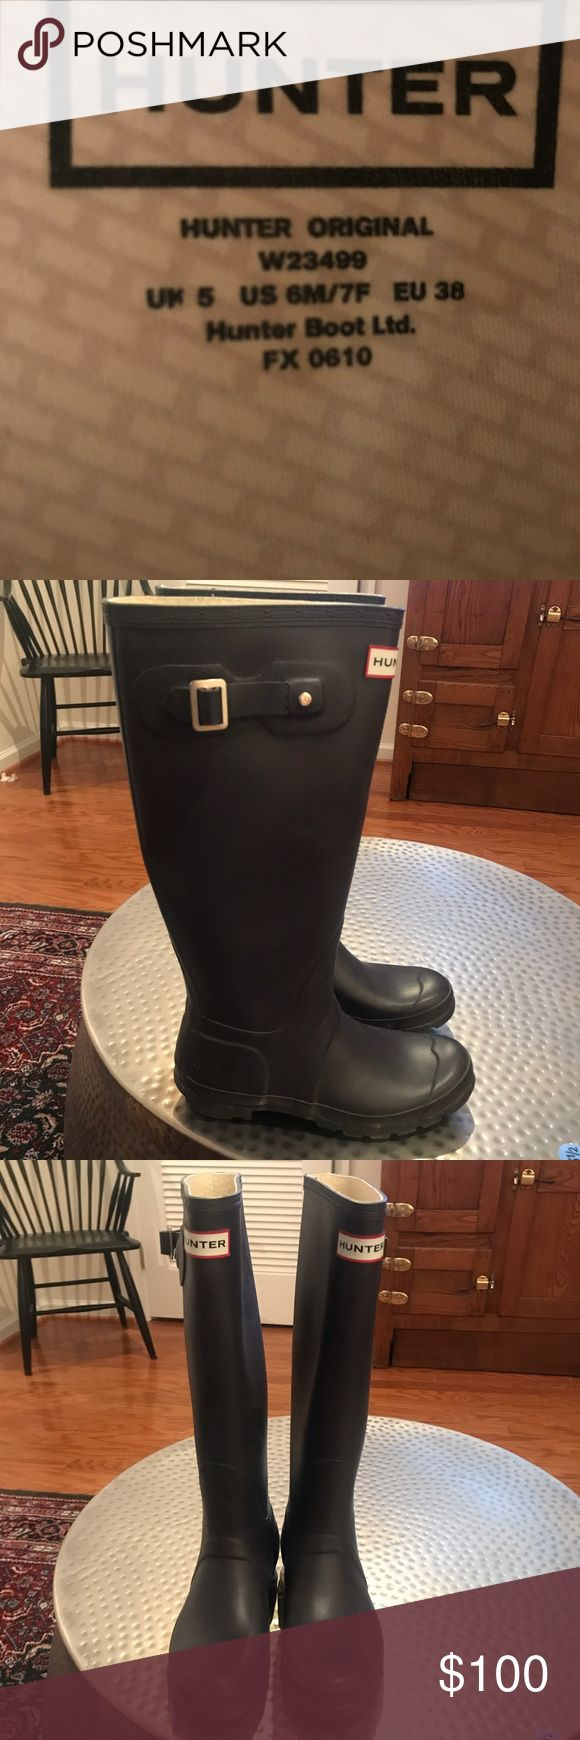 Original tall hunter rain boots plum purple size6 Great condition original hunter rain boots, only worn 5 times! Hunter Boots Shoes Winter & Rain Boots